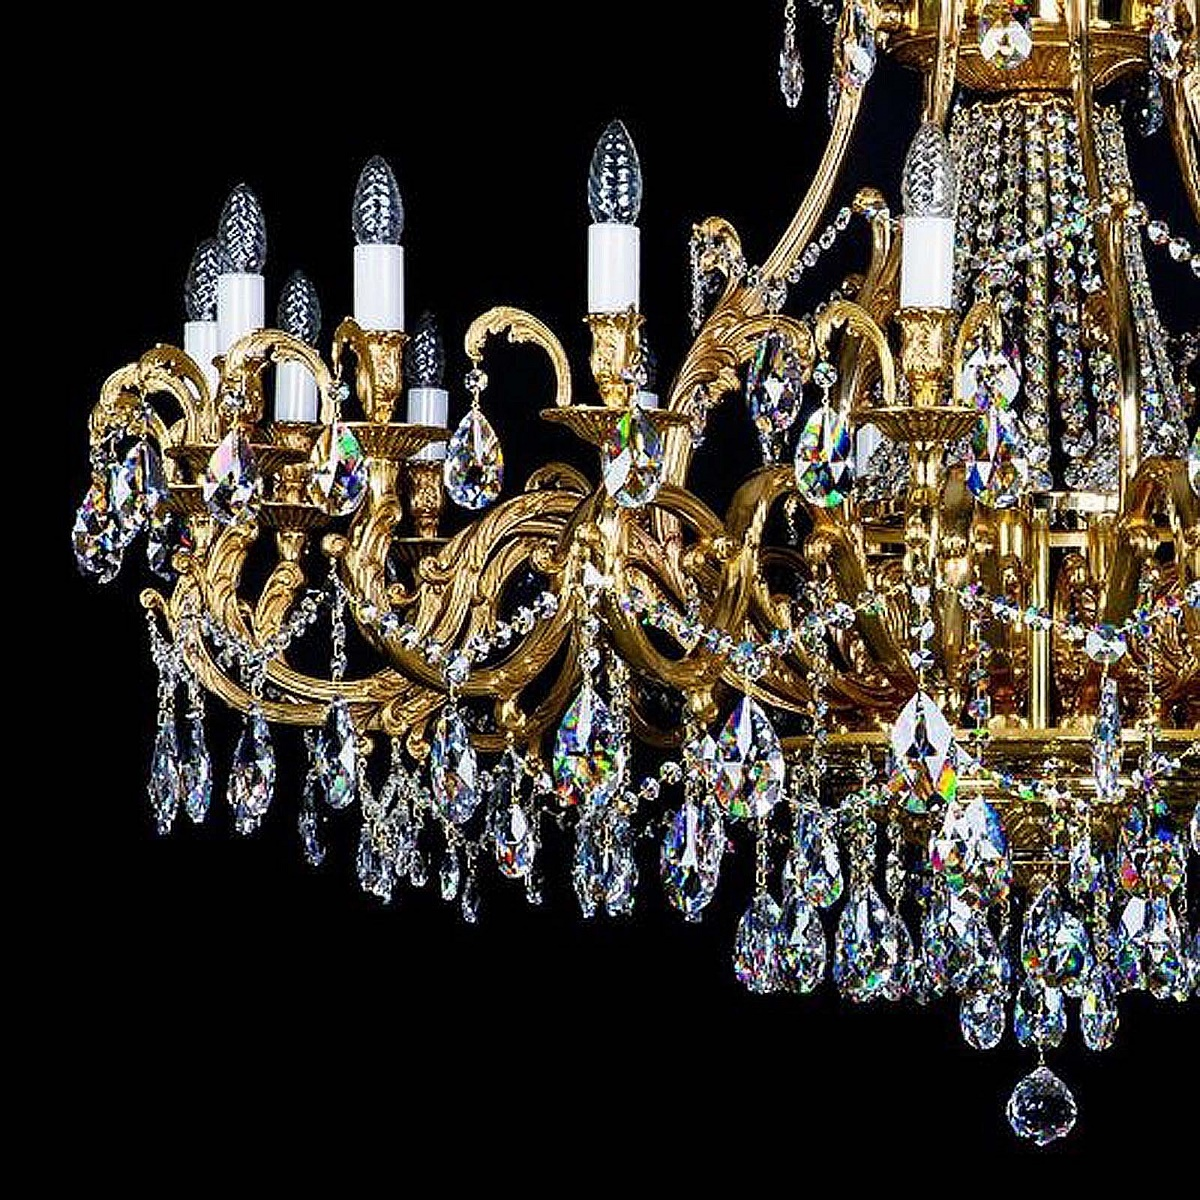 Brass chandelier LYRA 1420x1100